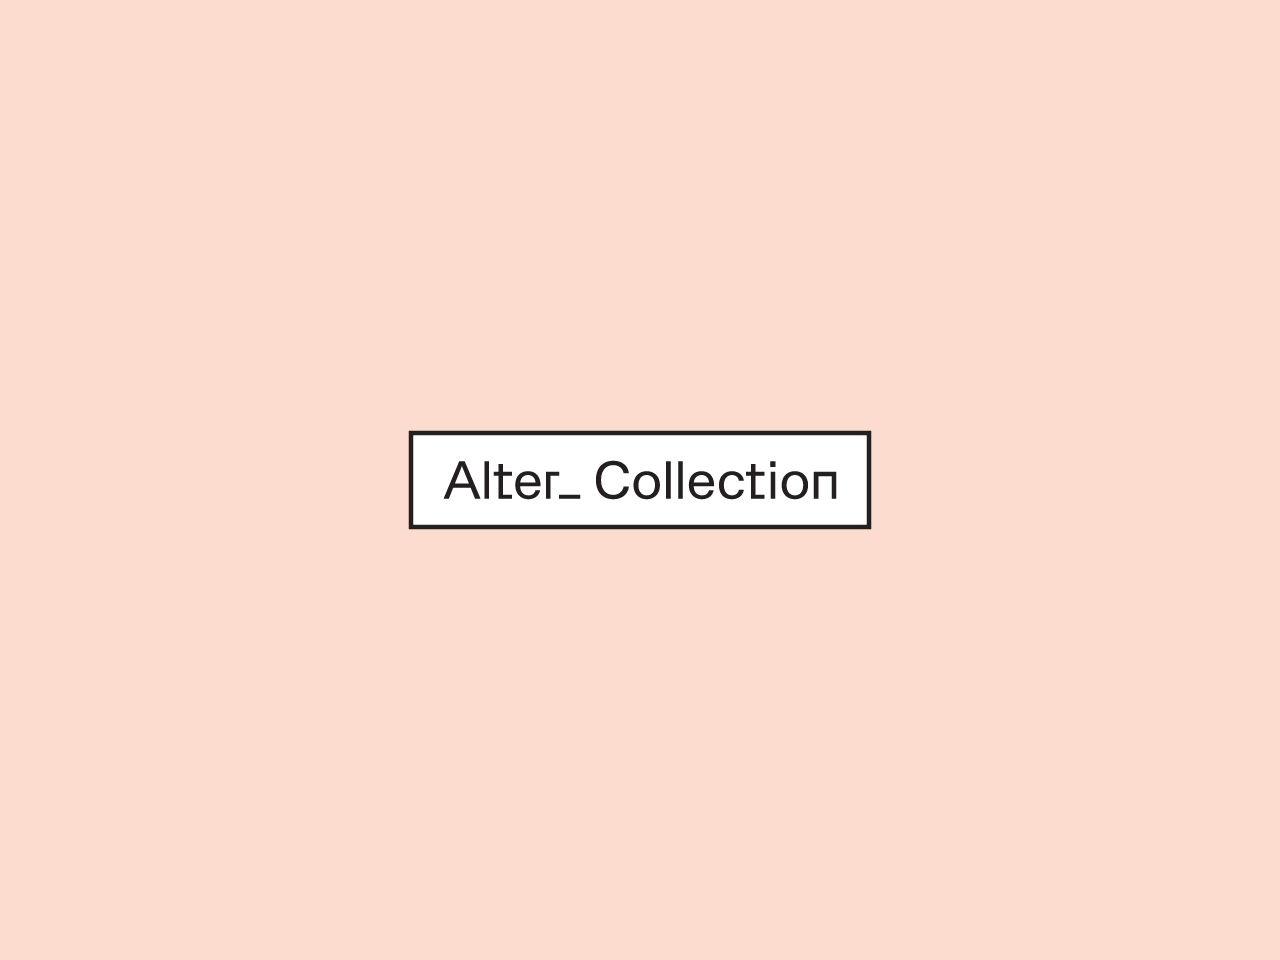 Alter Collection logo